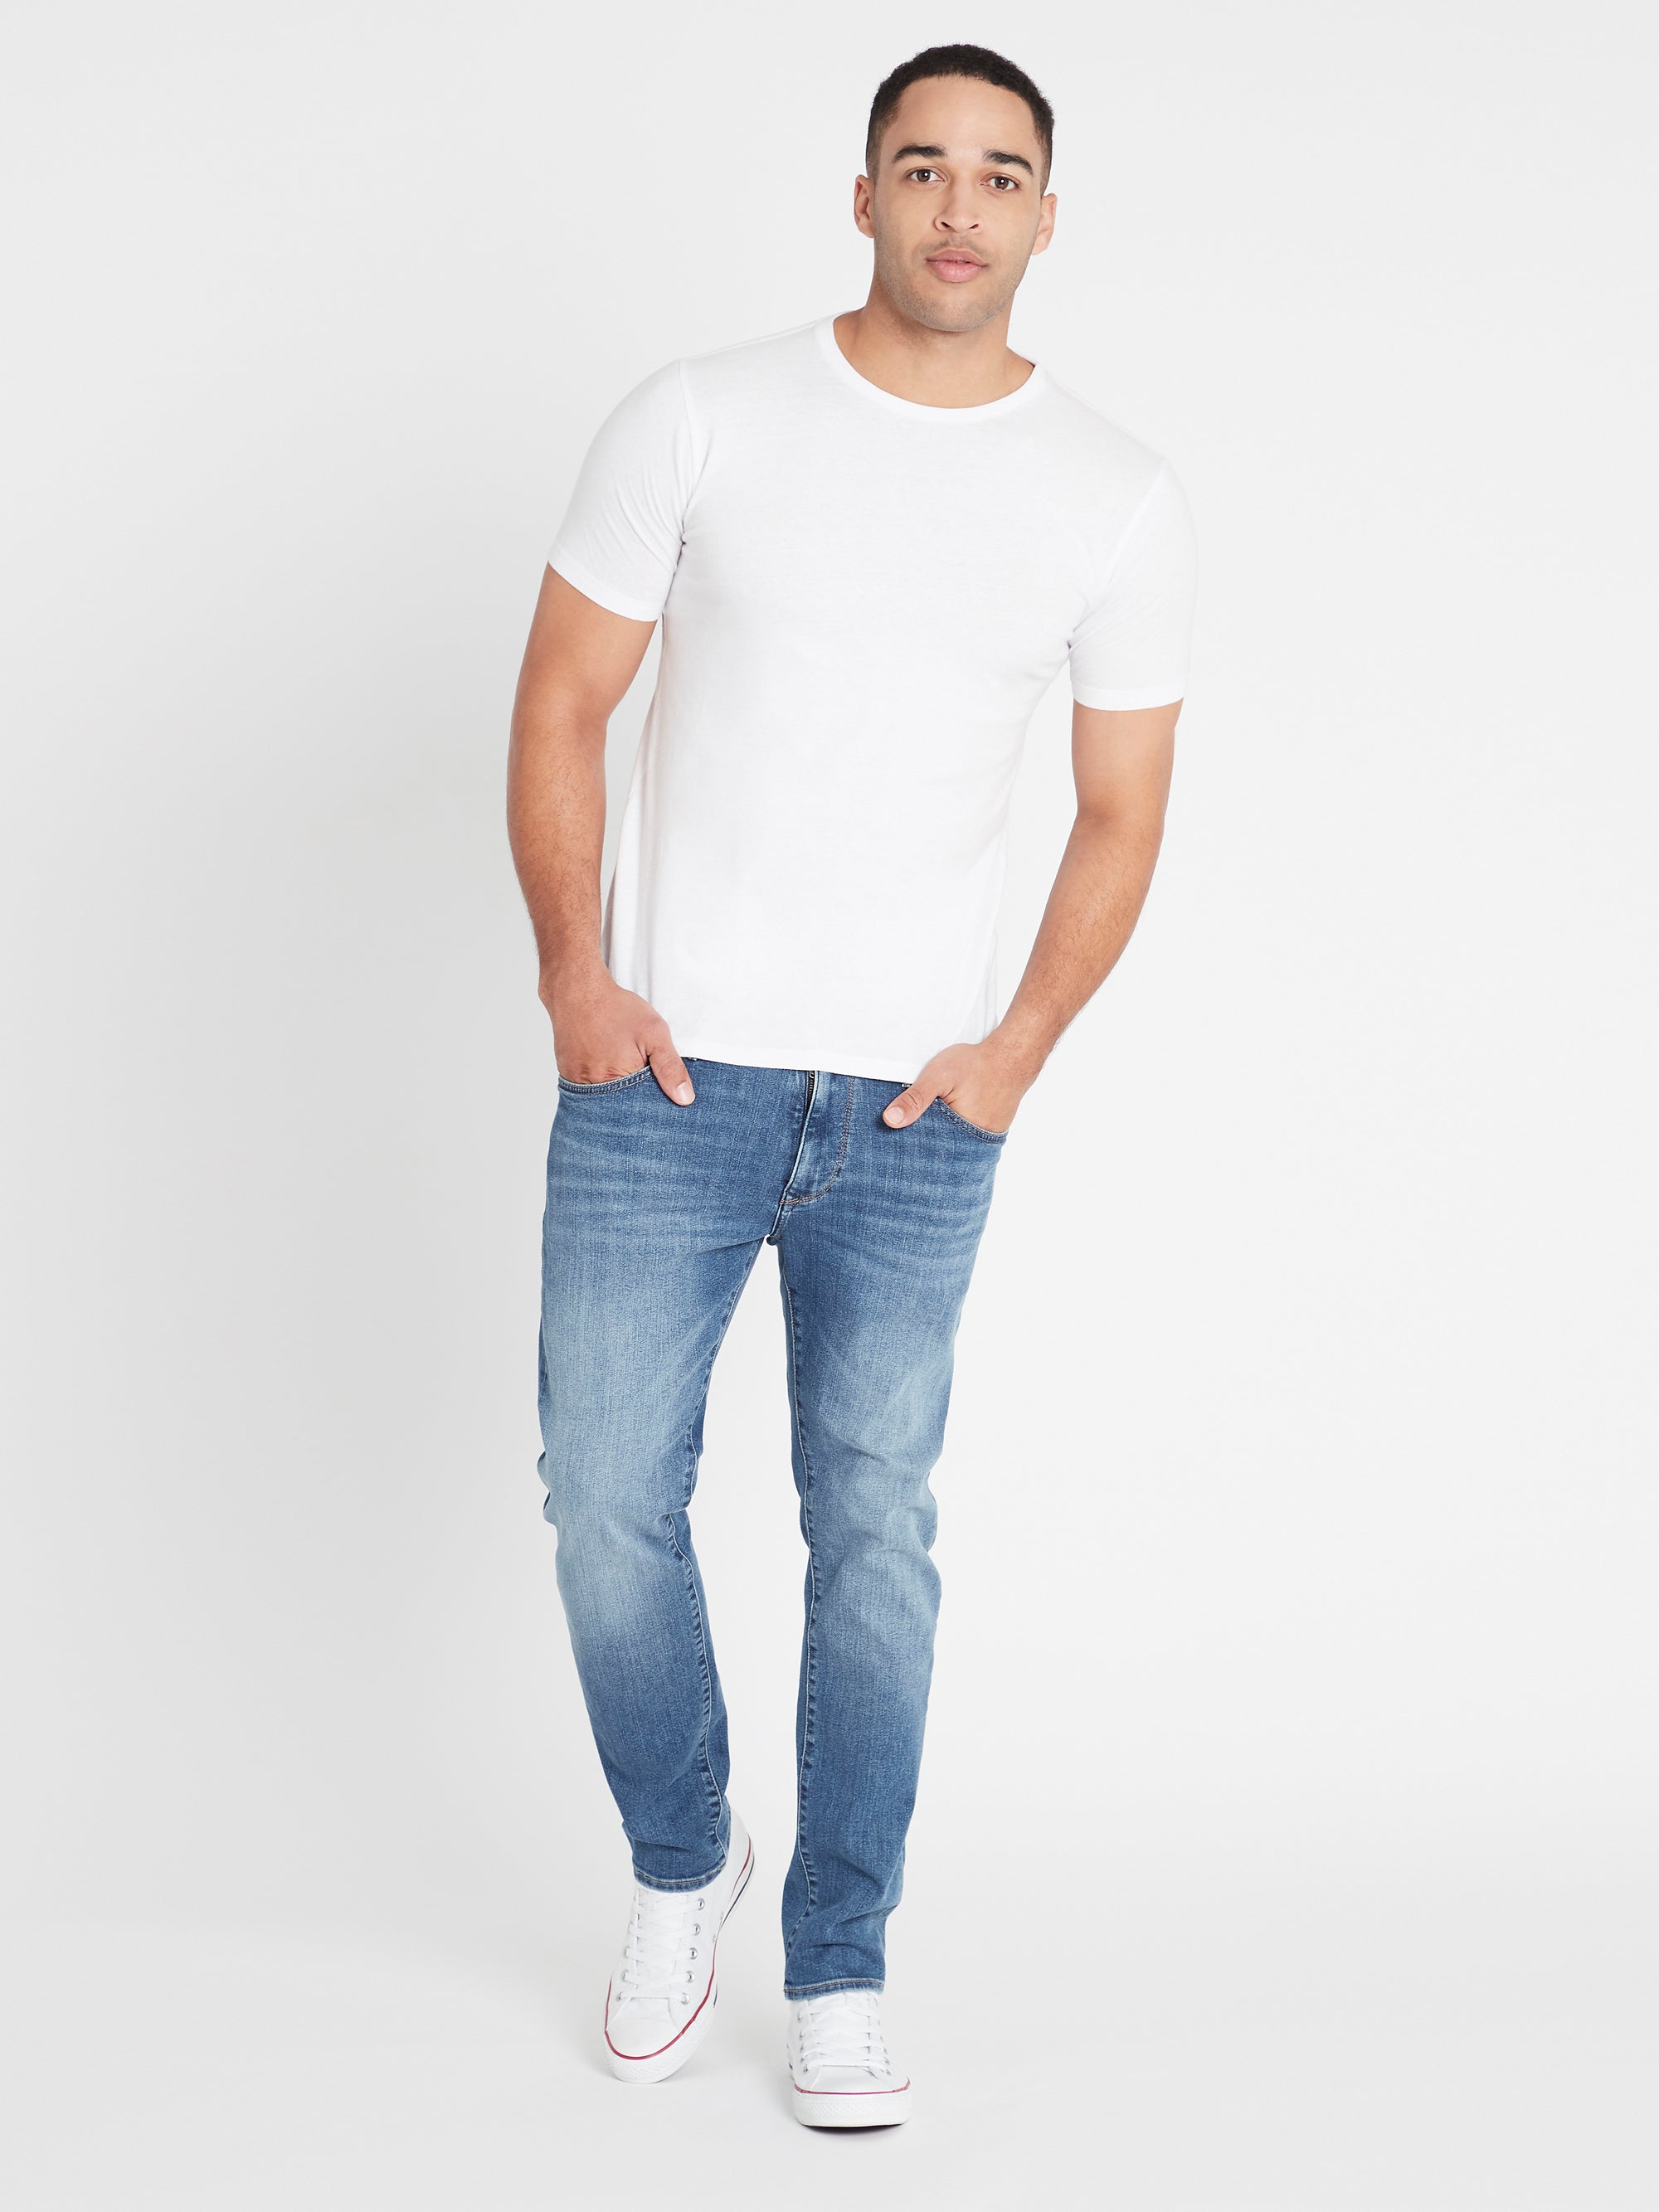 James Skinny Jeans in Light Indigo Mavi